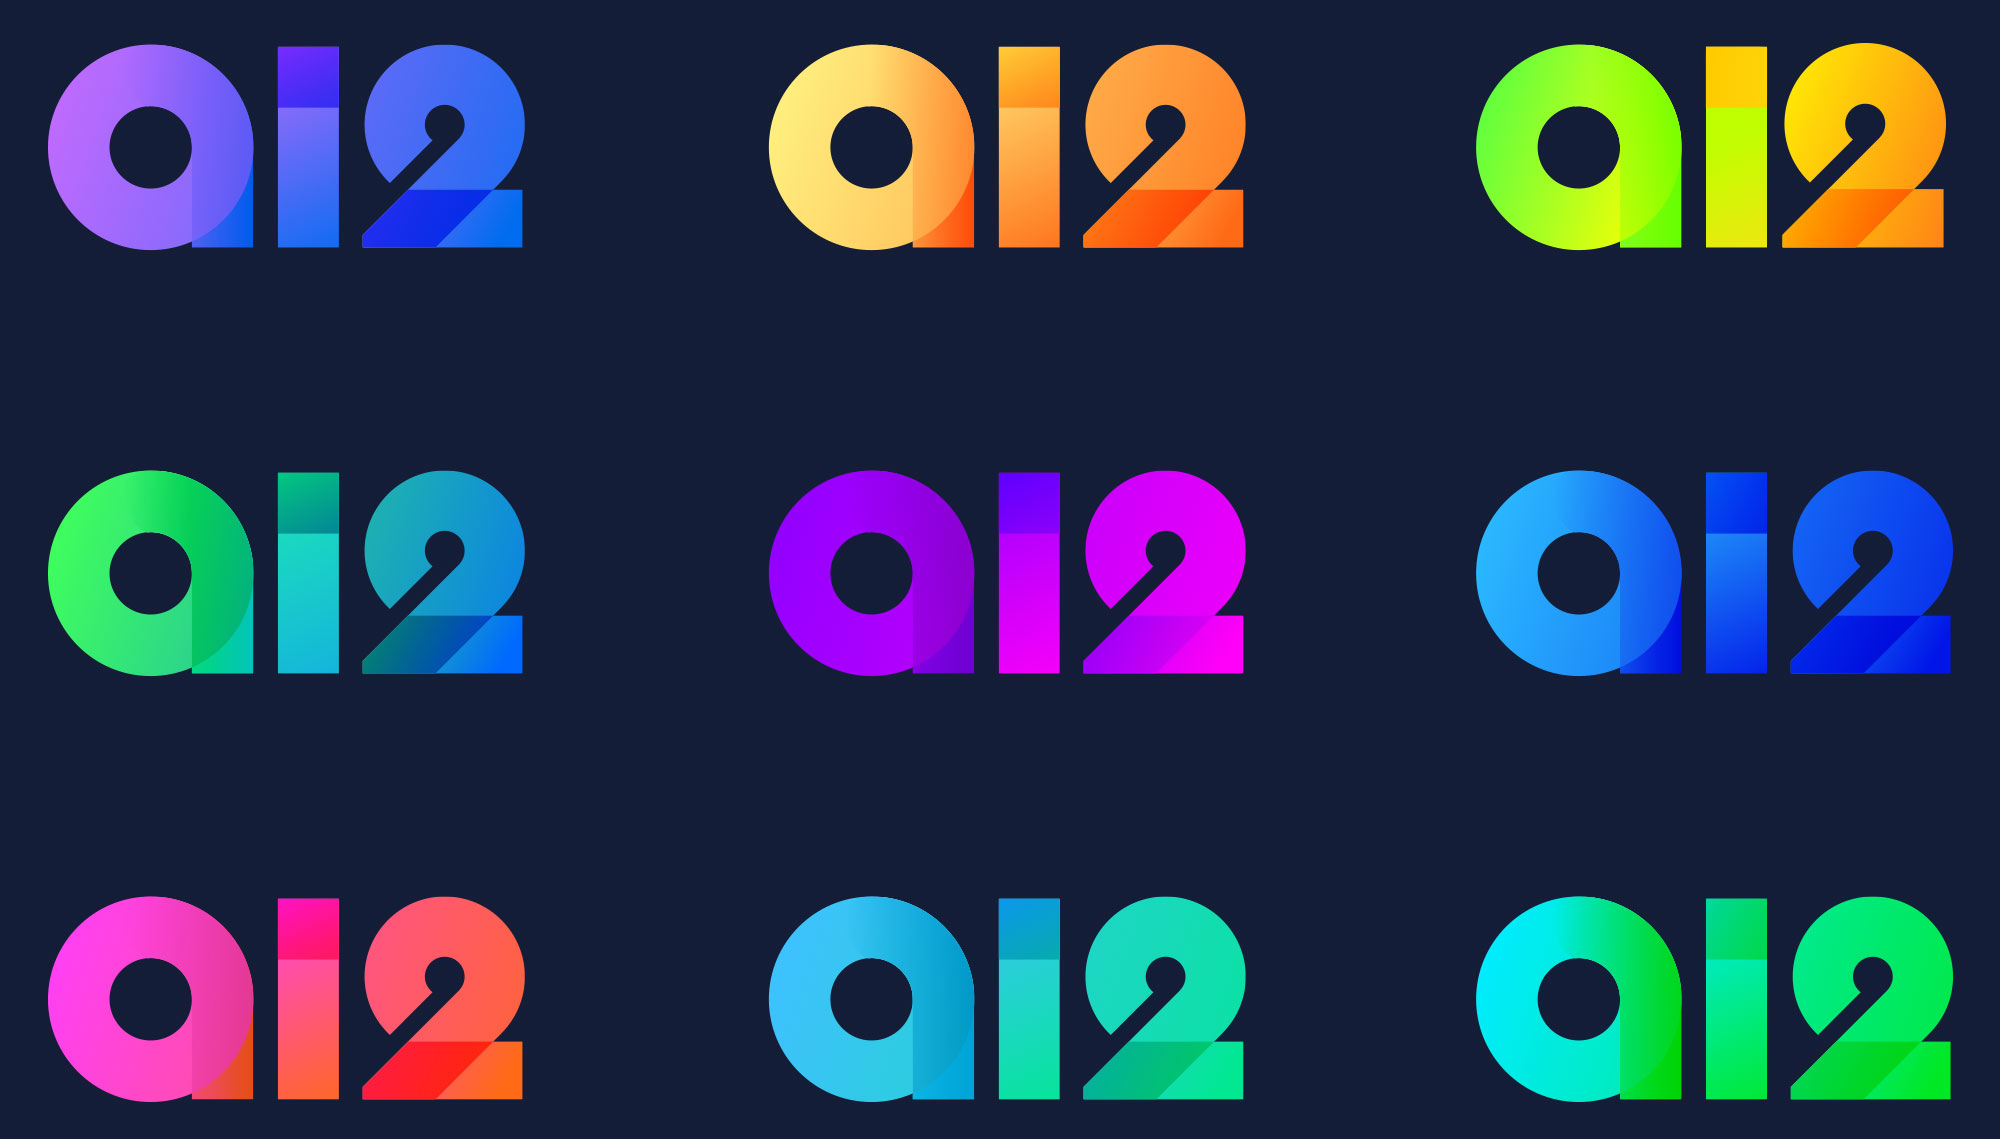 c2-logo-set-colors